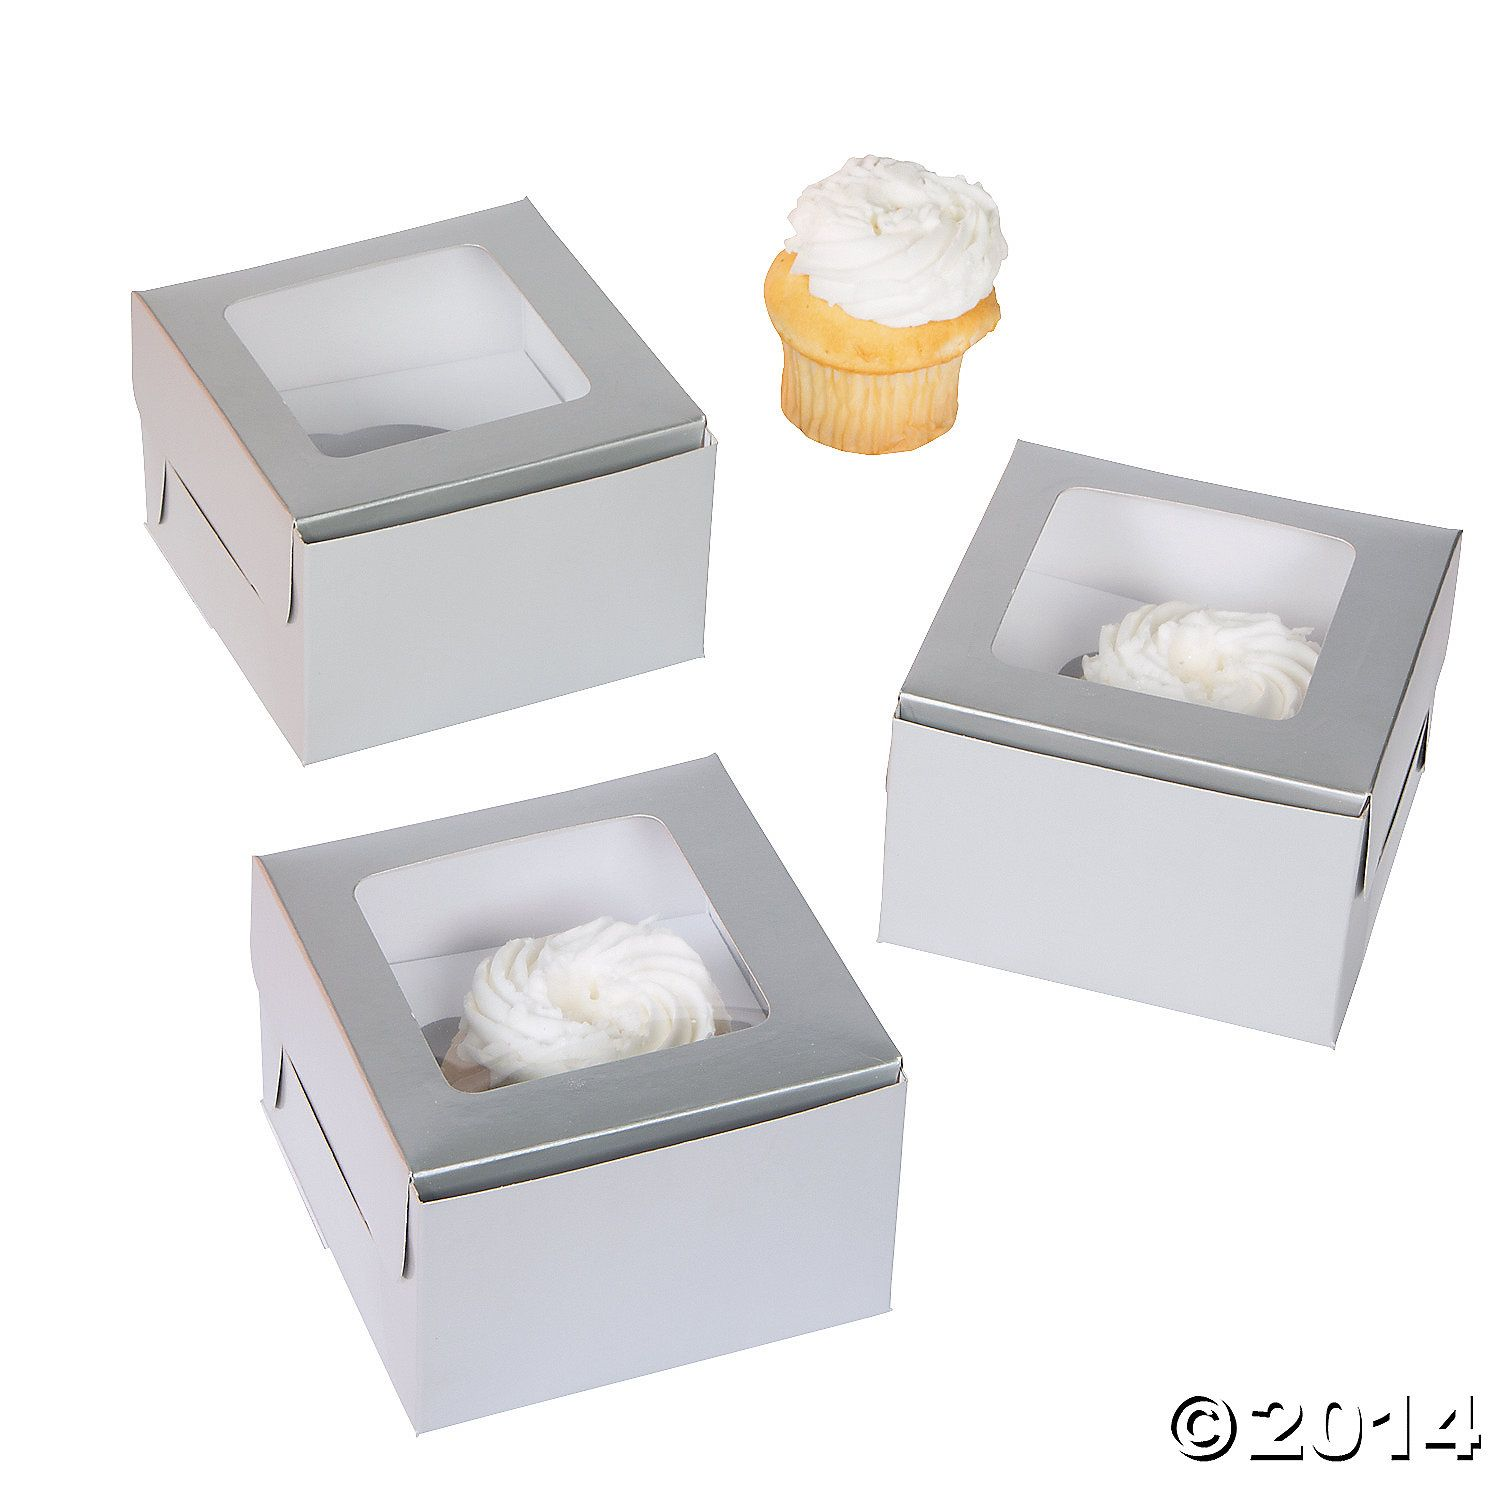 Cupcake Boxes | Cupcake boxes, Craft business and Box